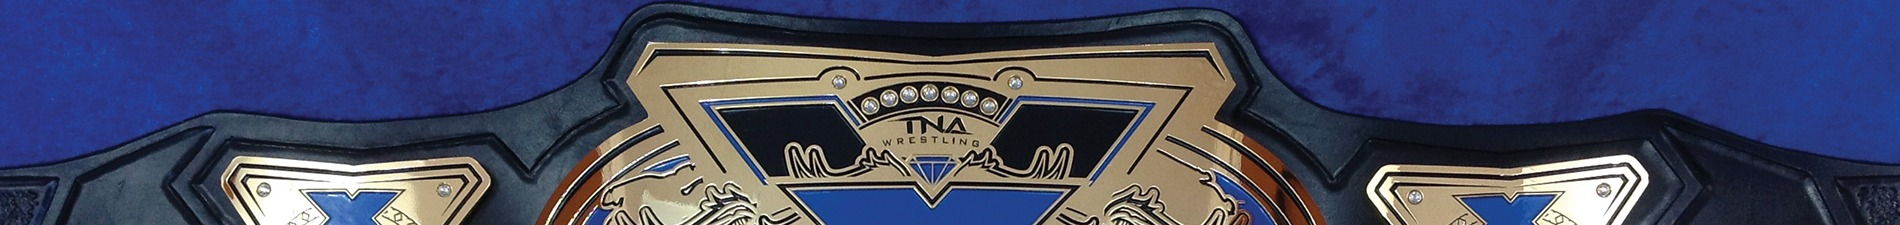 Header image closeup of leather and etched zinc championship belt with blue color-filling